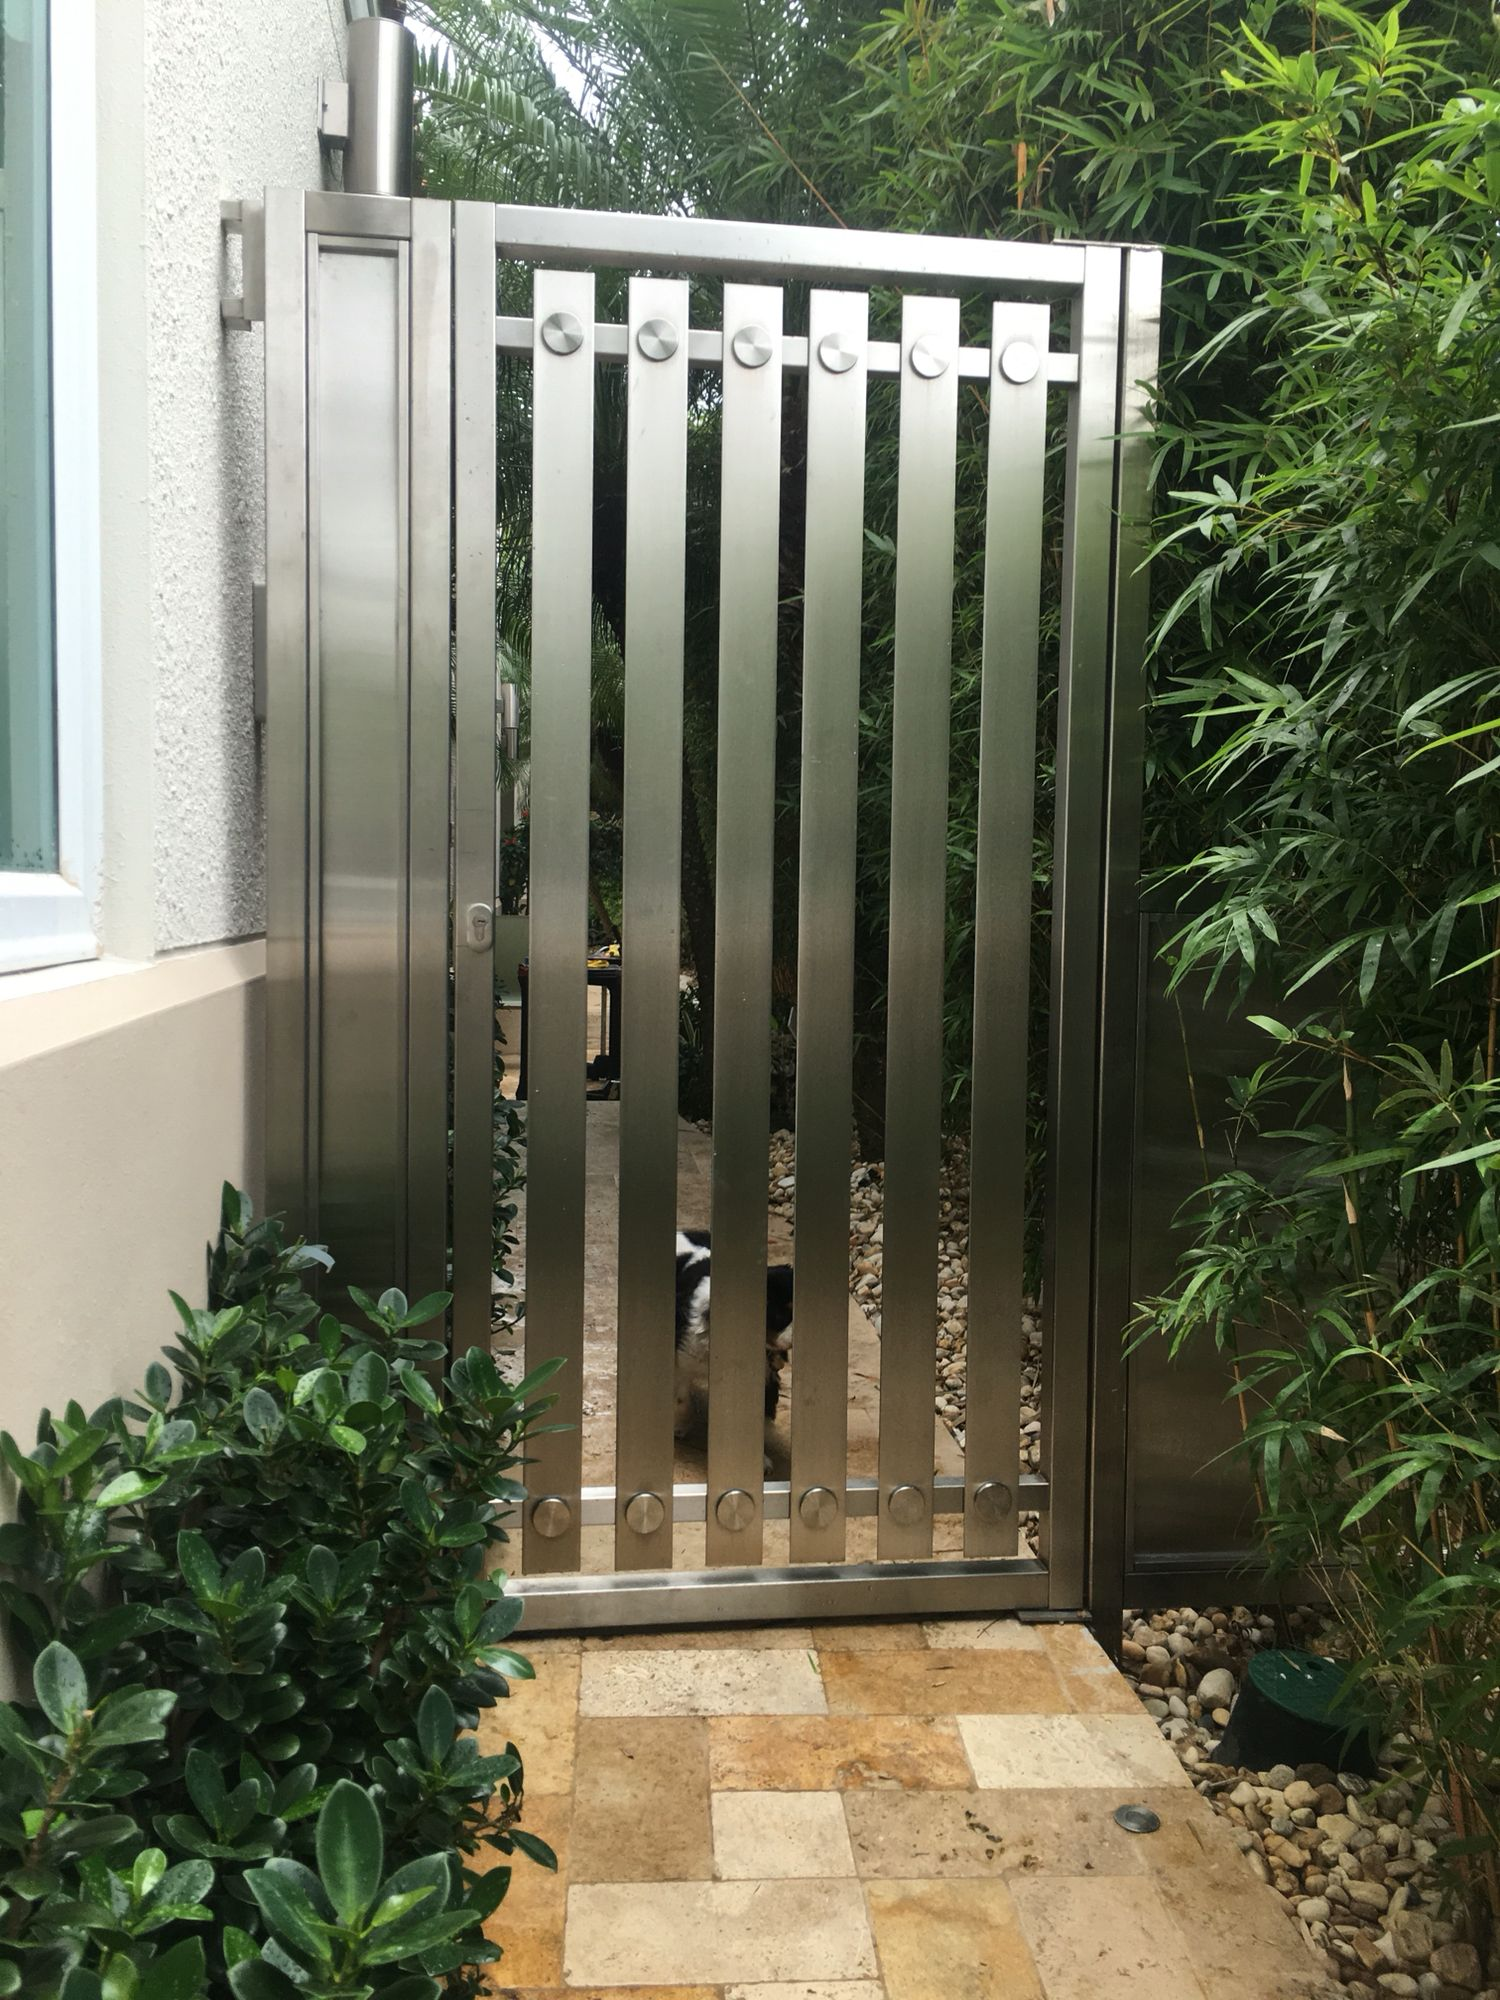 Stainless Steel Gate My Work 2 Pinterest Steel Gate